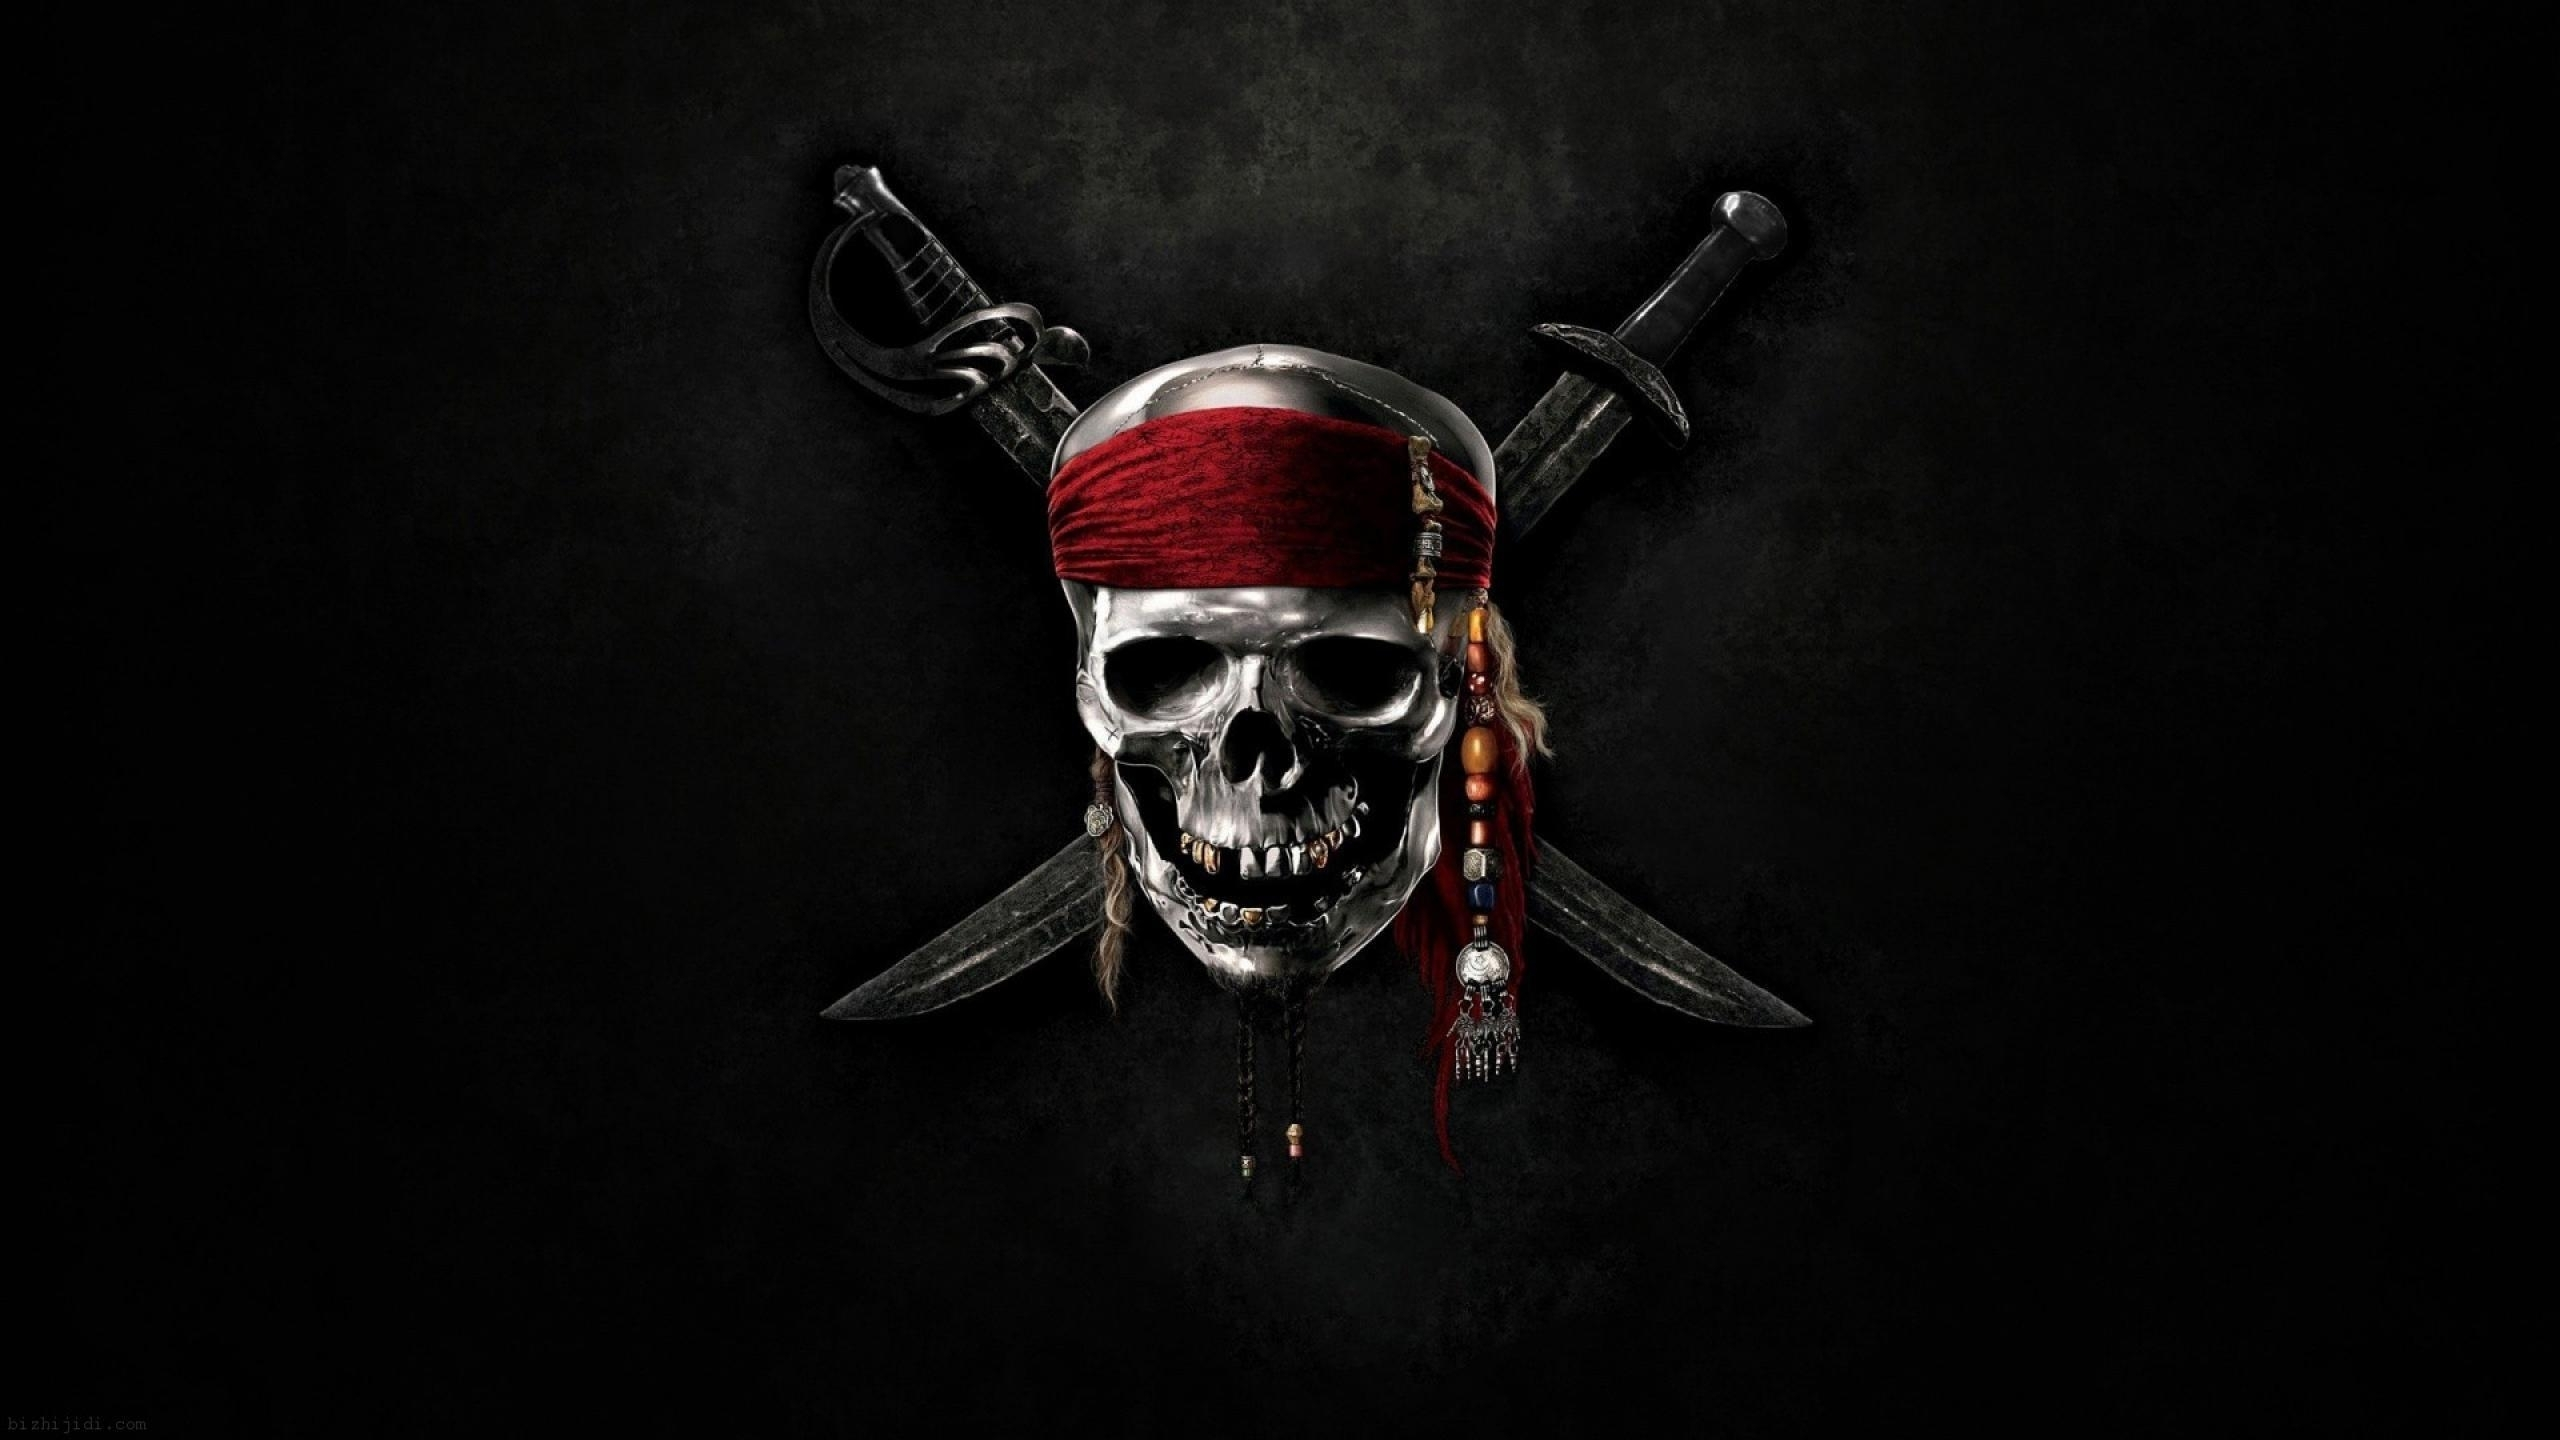 10 Top Cool 3D Skull Wallpapers FULL HD 1080p For PC Background